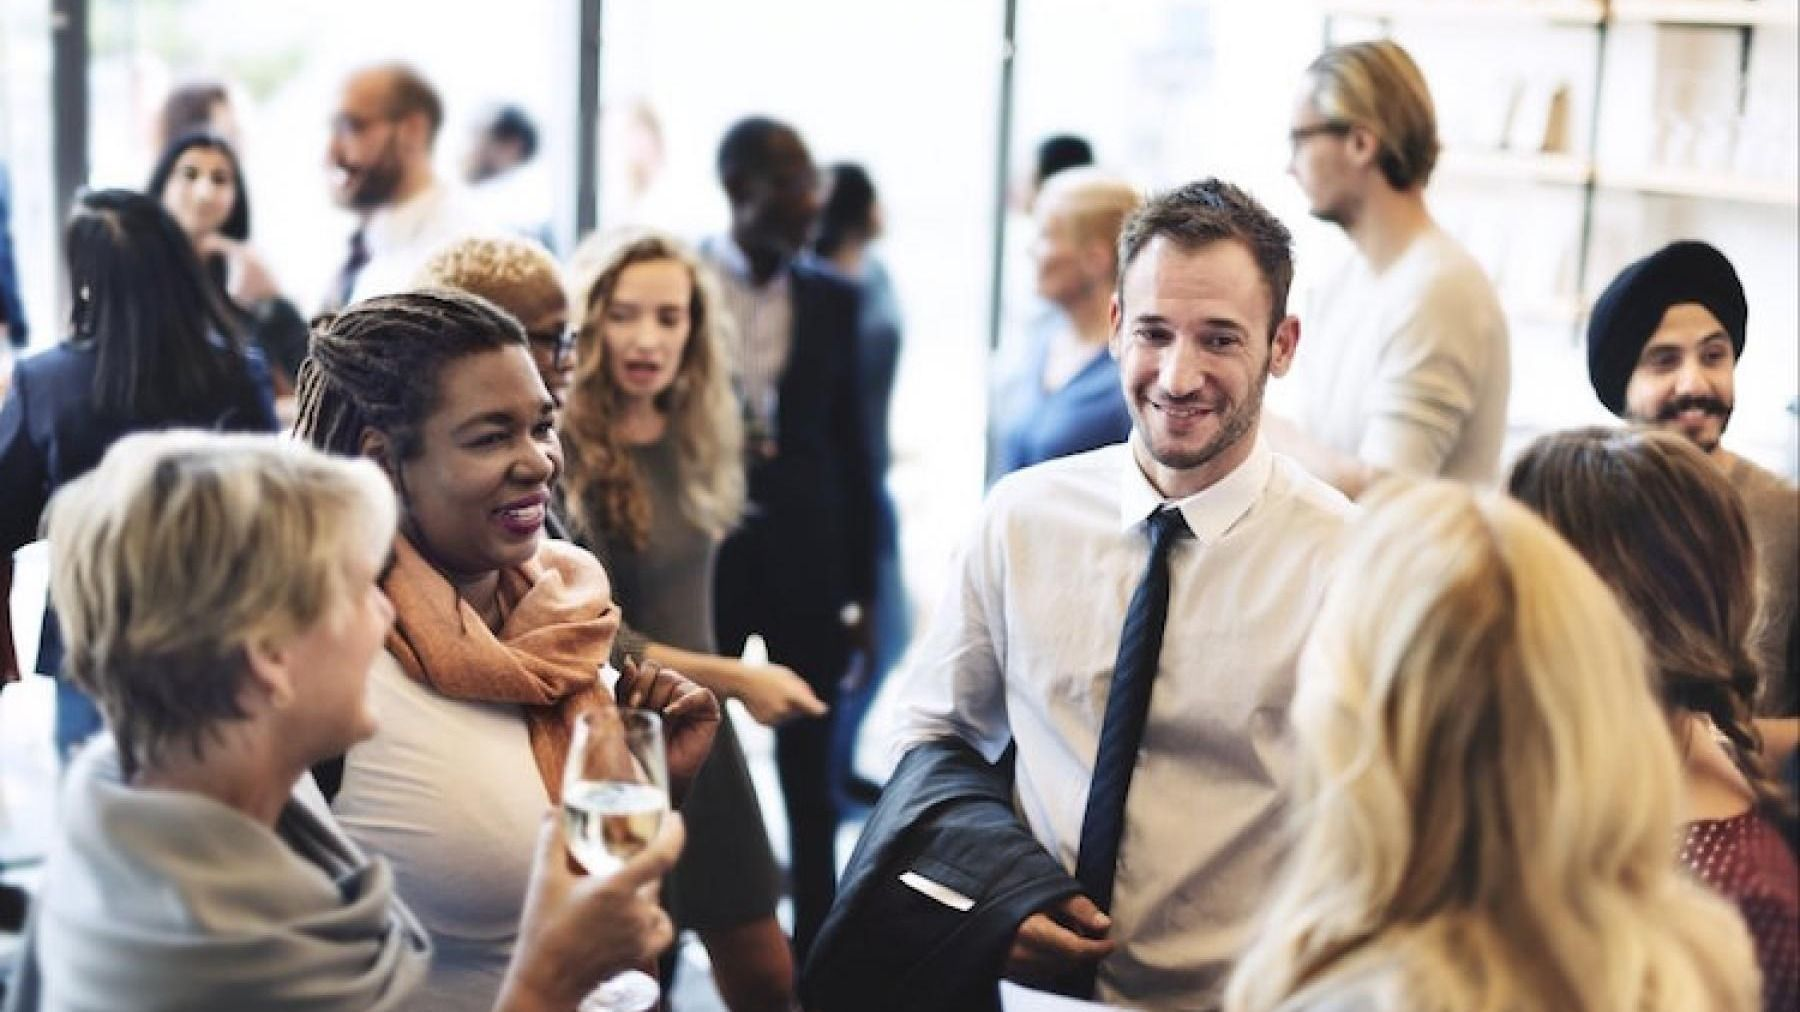 New Jersey Professional Networking Meetup